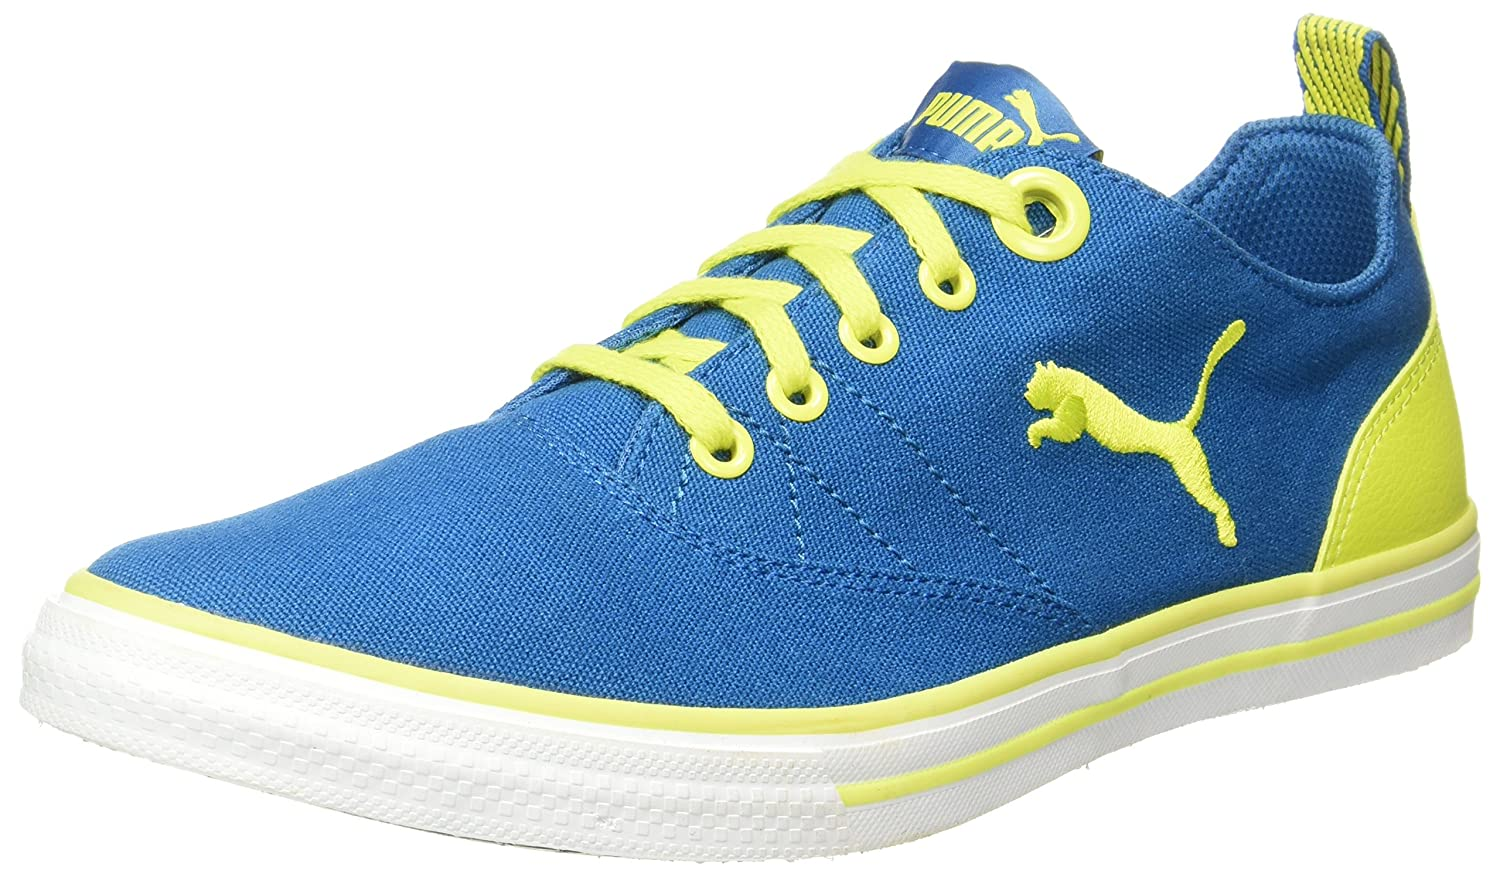 5c4cd02a1b0982 Puma Unisex Slyde Dp Sneakers  Buy Online at Low Prices in India - Amazon.in